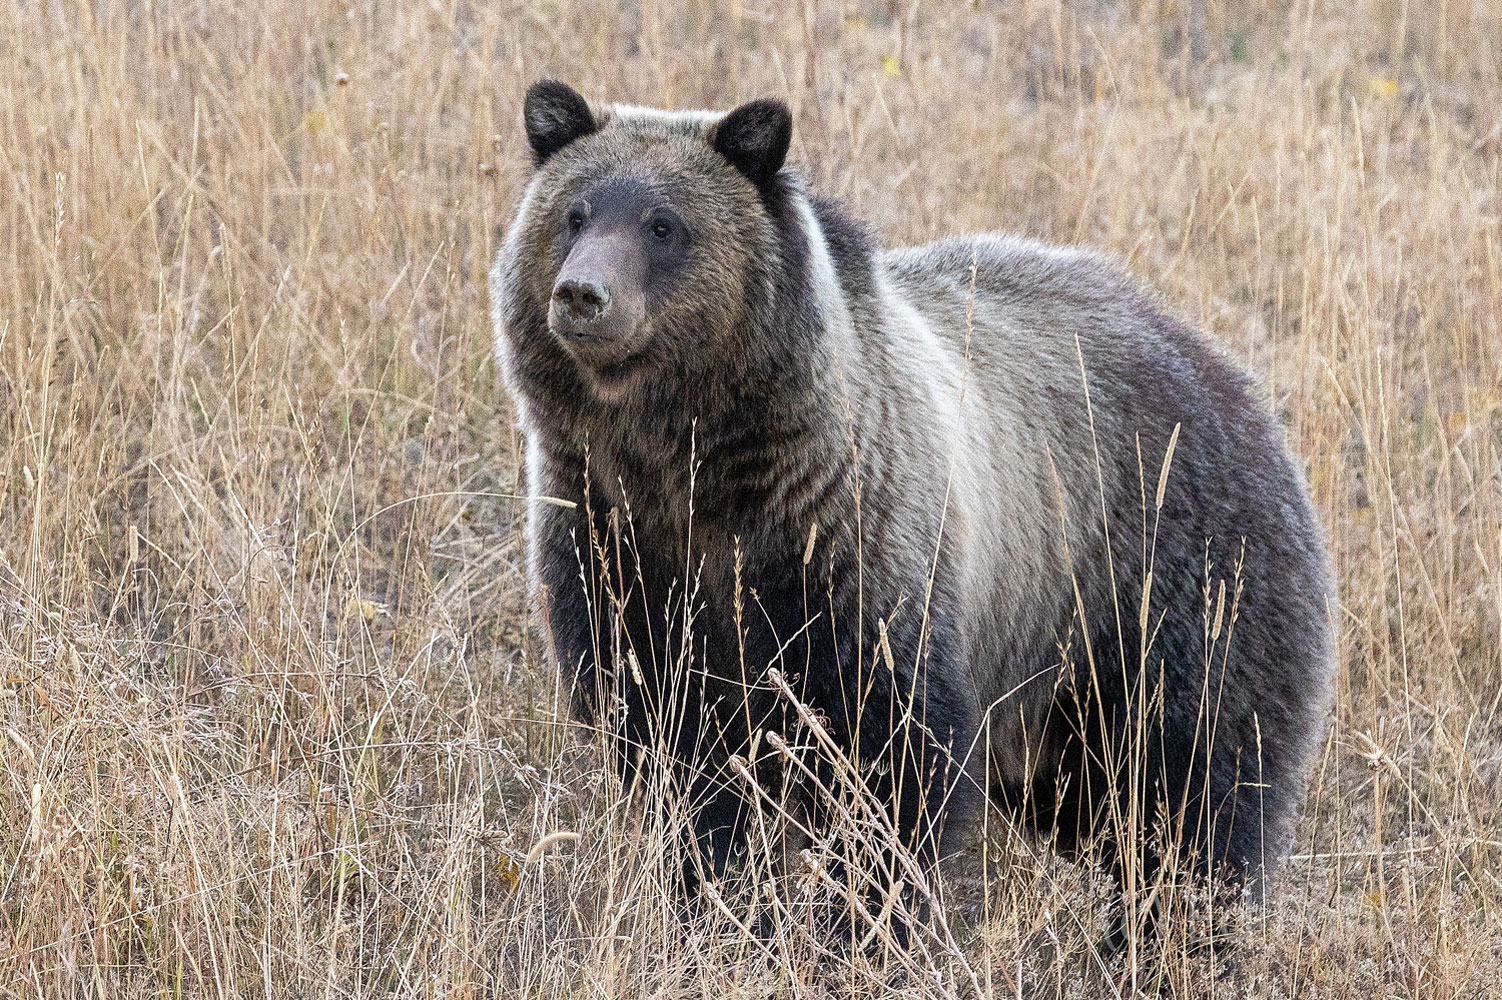 Grizzly 610, daughter of 399, and mother to two large cubs, is in the prime of her life and cuts a powerful figure.